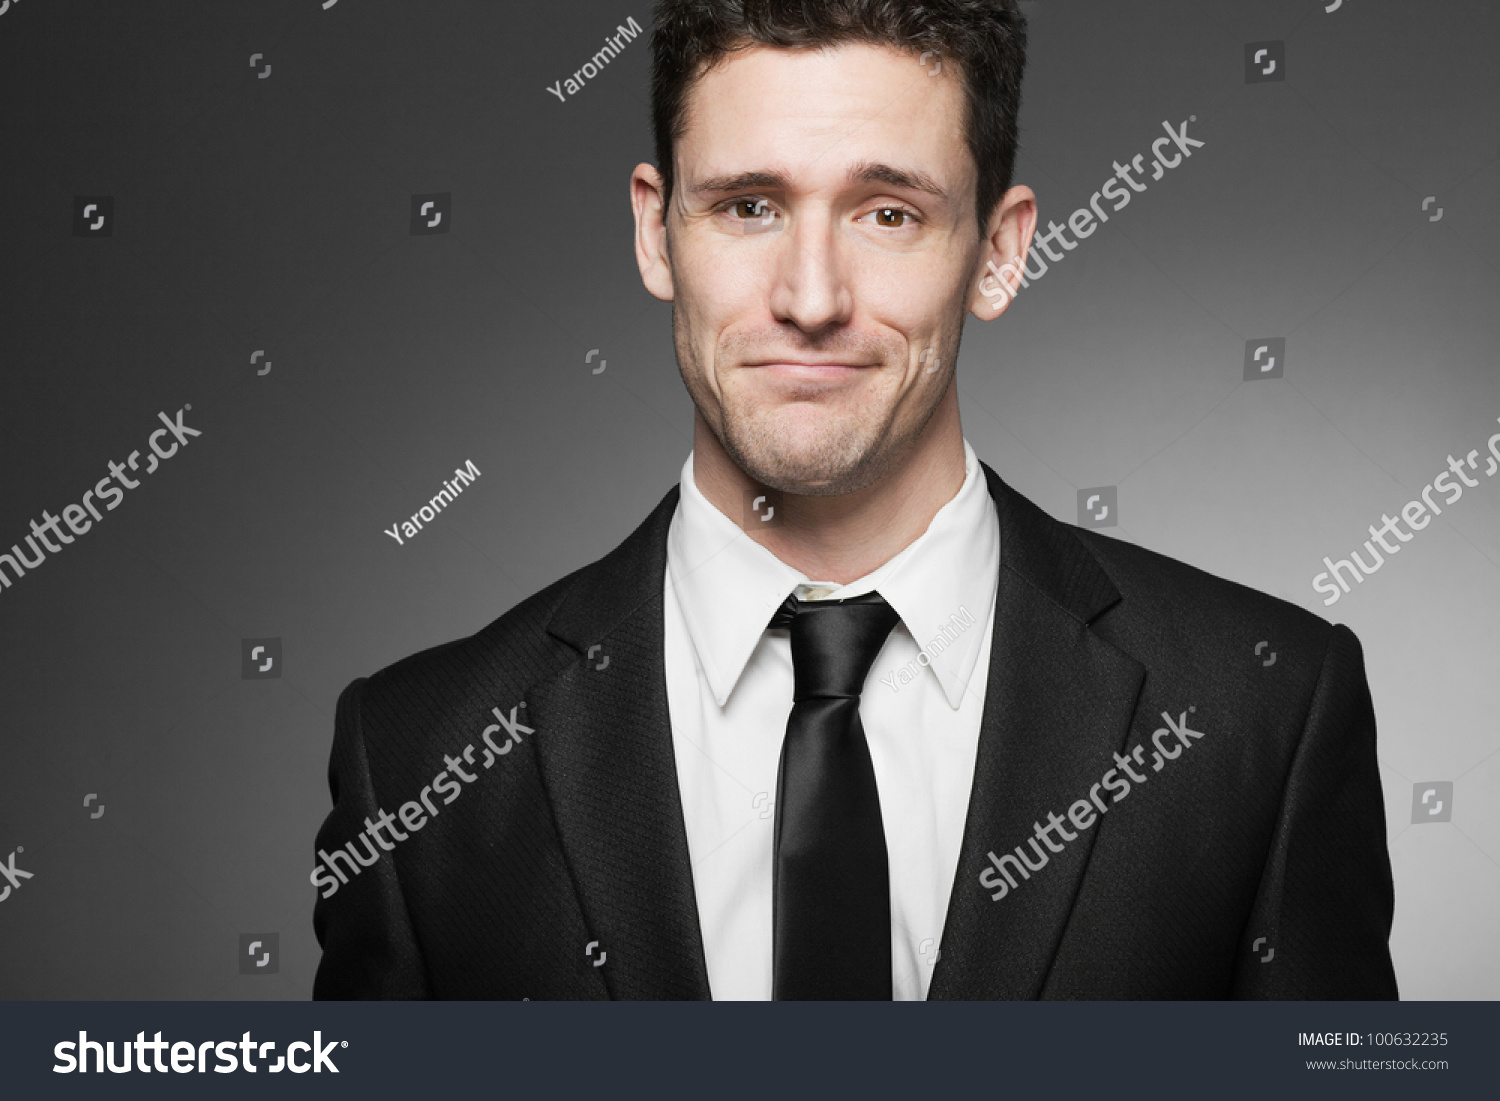 Young Handsome Business Man White Shirt Stock Photo 100632235